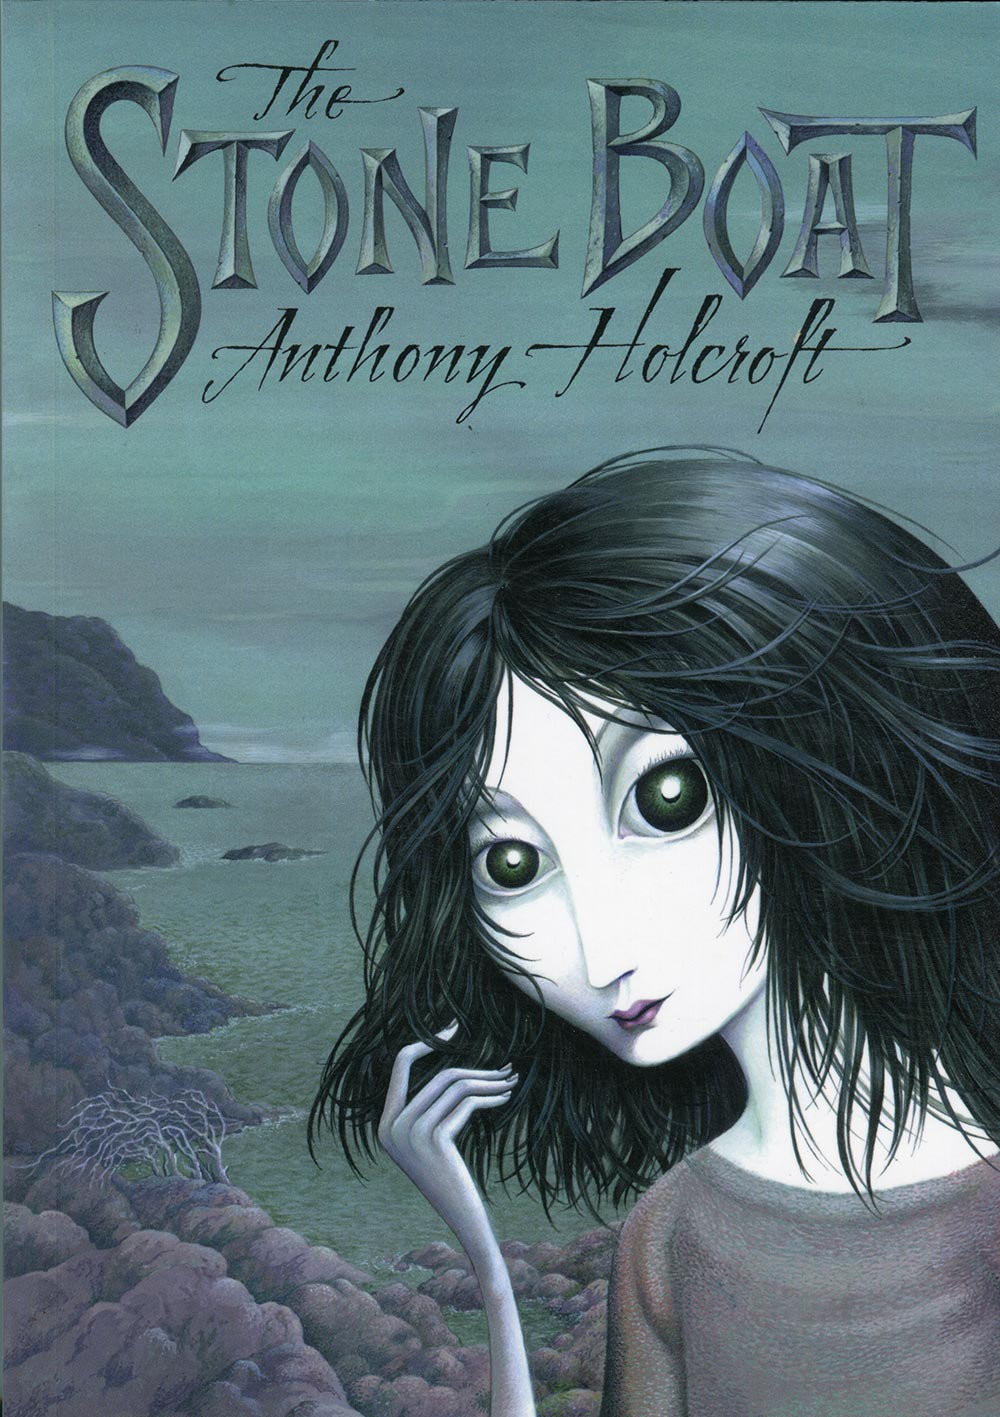 Link to Anthony Holcroft's story collection, The Stone Boat.